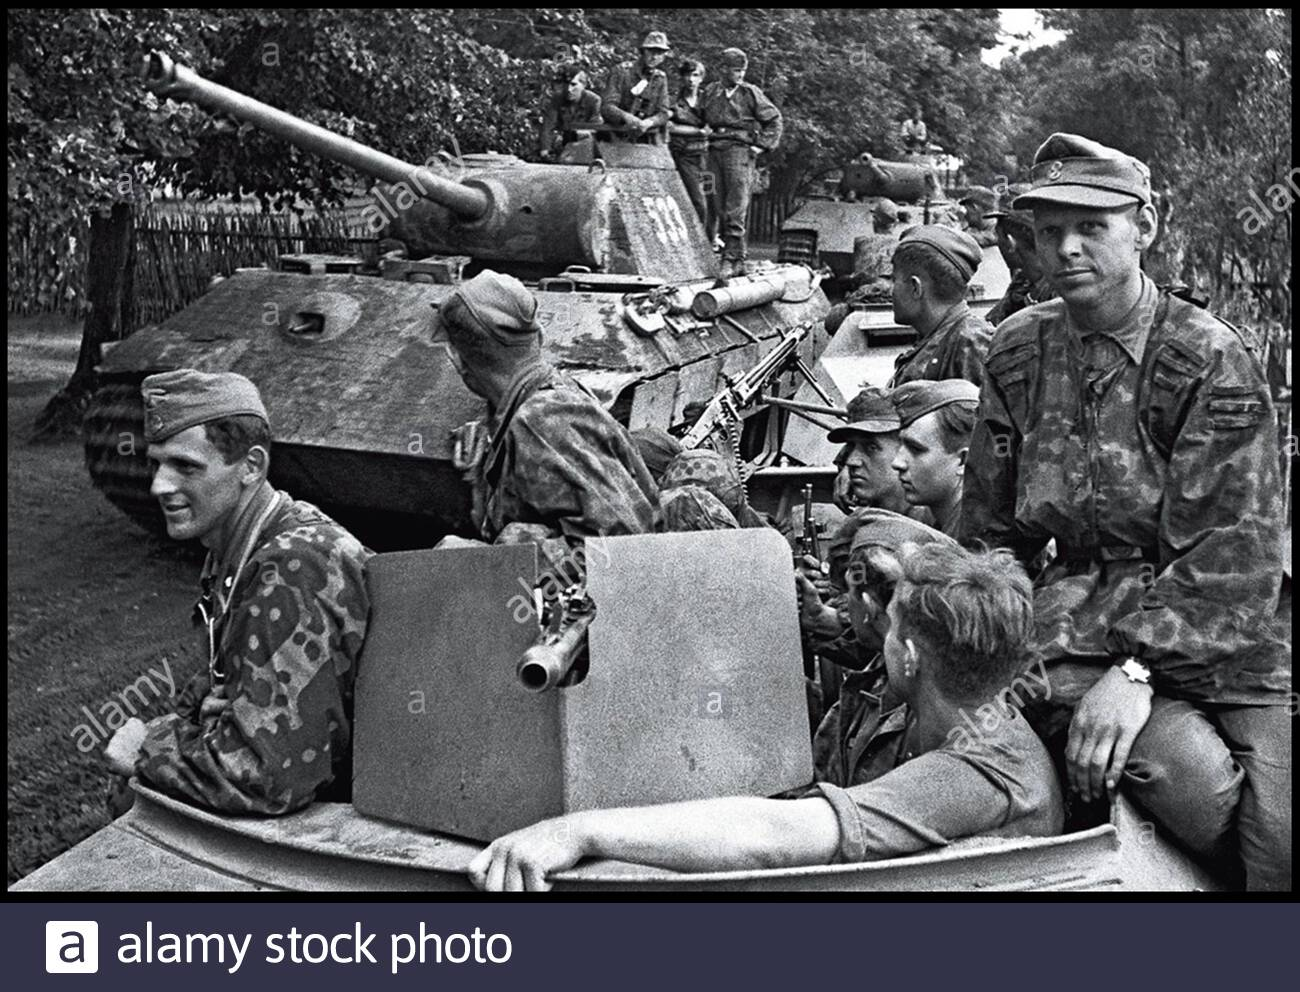 Horch 901 of the 5th Panzer Division Wiking | World War Photos